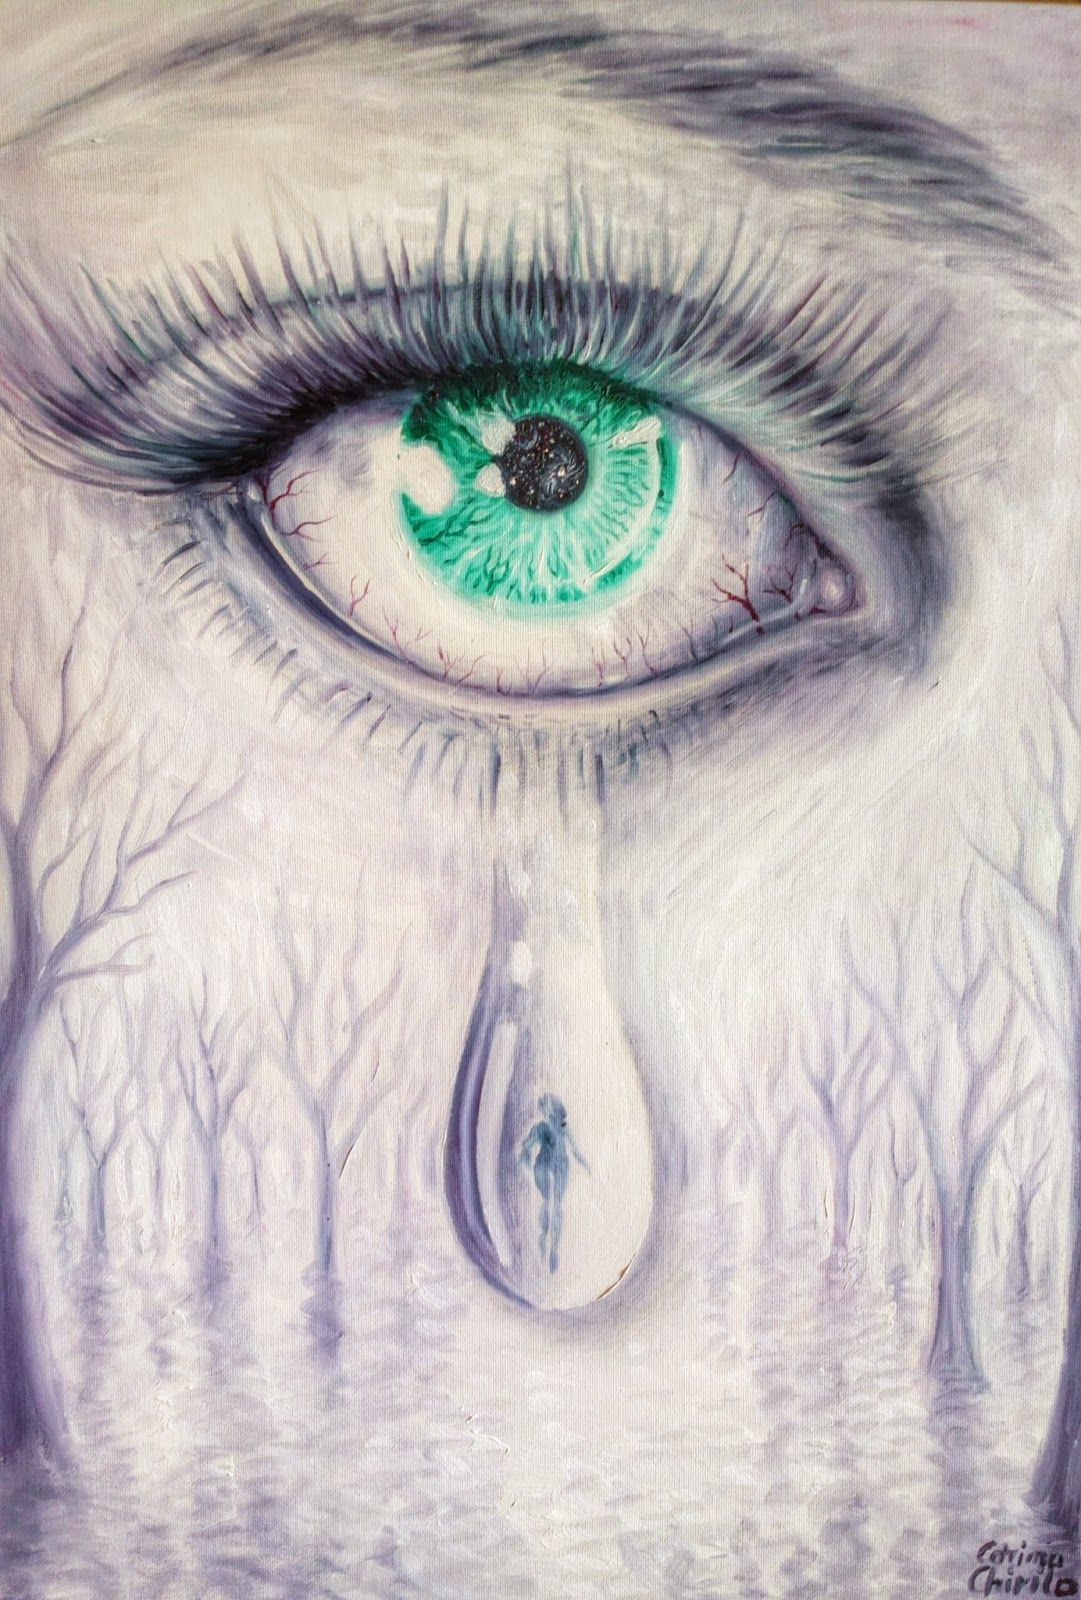 Corinazone art the art of corina chirila♥ tears for a lost love oil on canvas painting